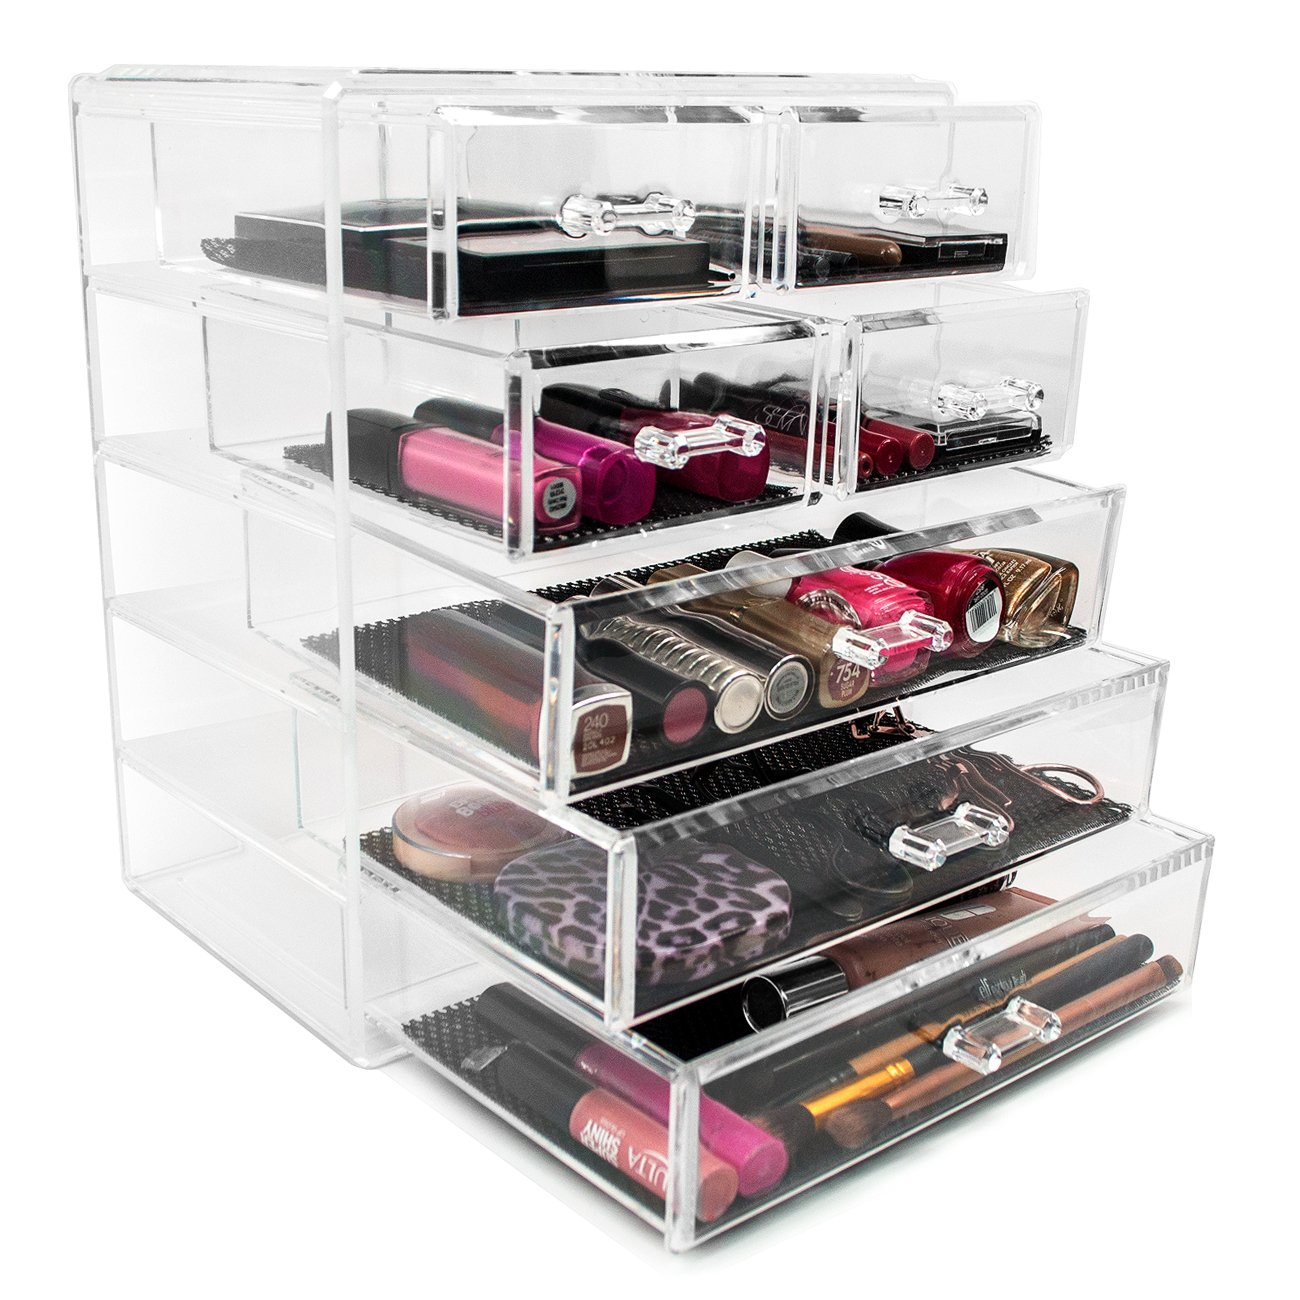 sorbus acrylic cosmetics makeup and jewelry storage case display  large and  small drawers space saving stylish acrylic bathroom: plastic makeup organizer put bathroom